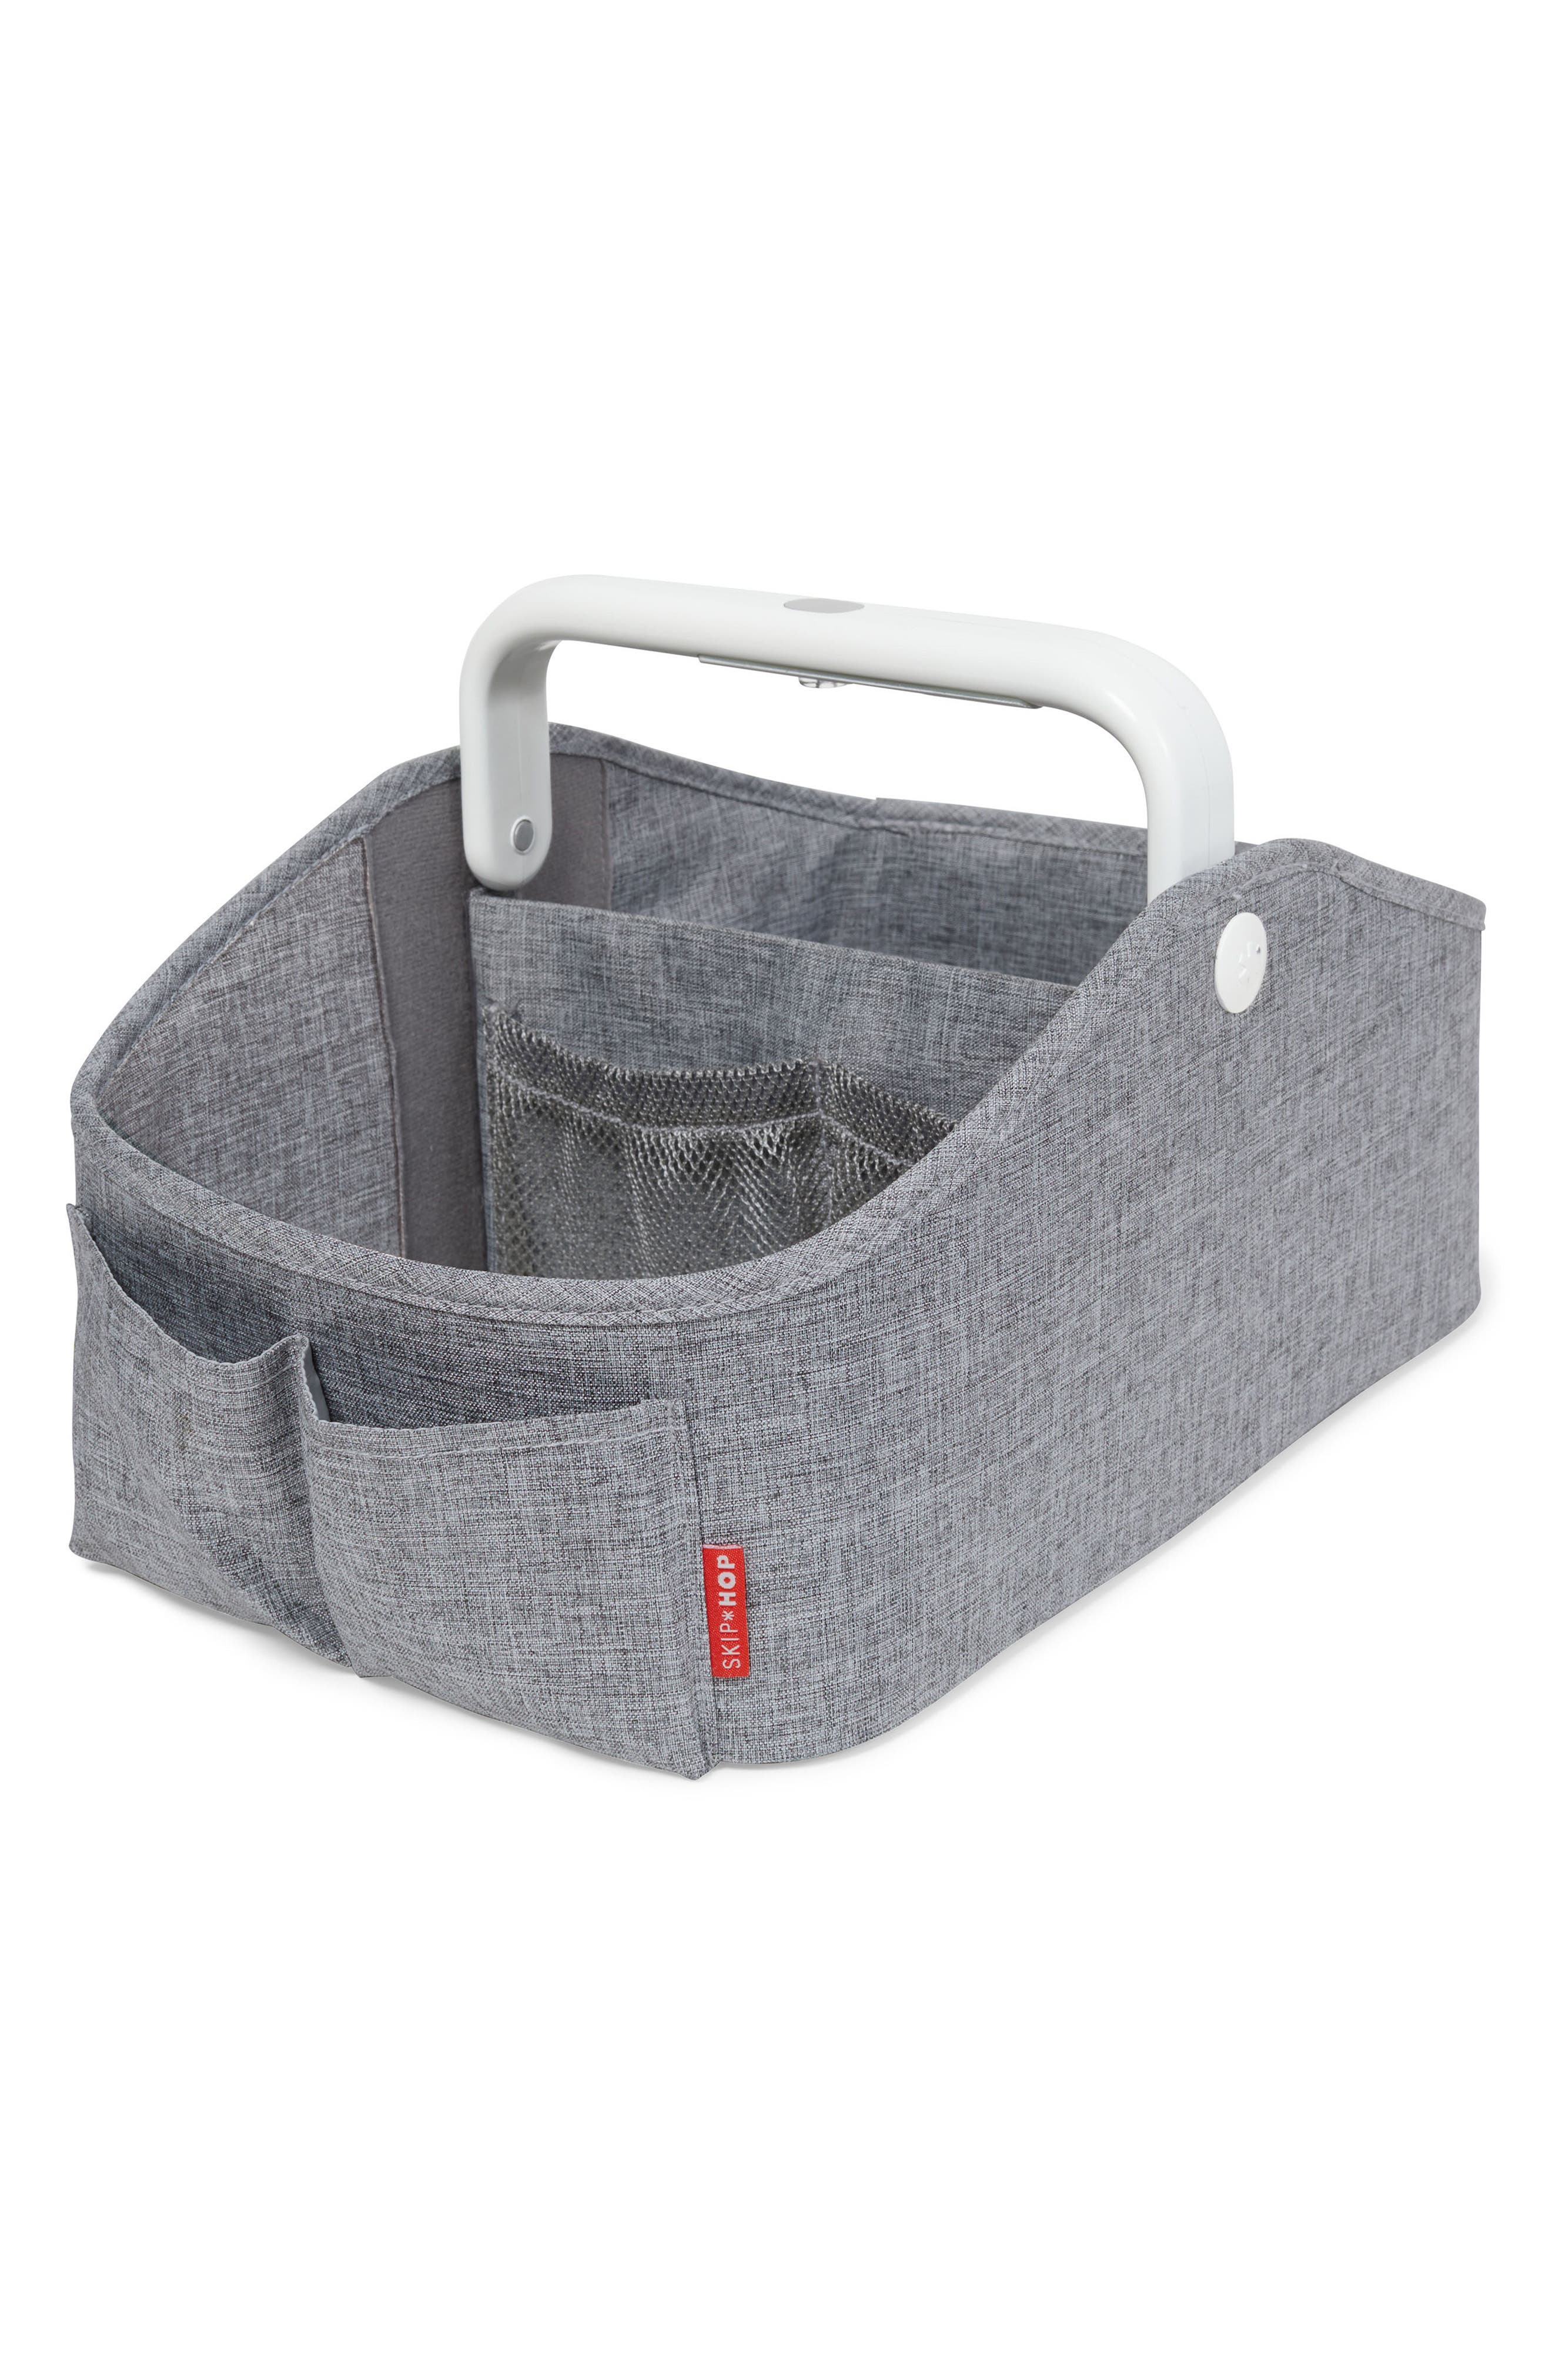 Light Up Diaper Caddy,                         Main,                         color, HEATHER GREY